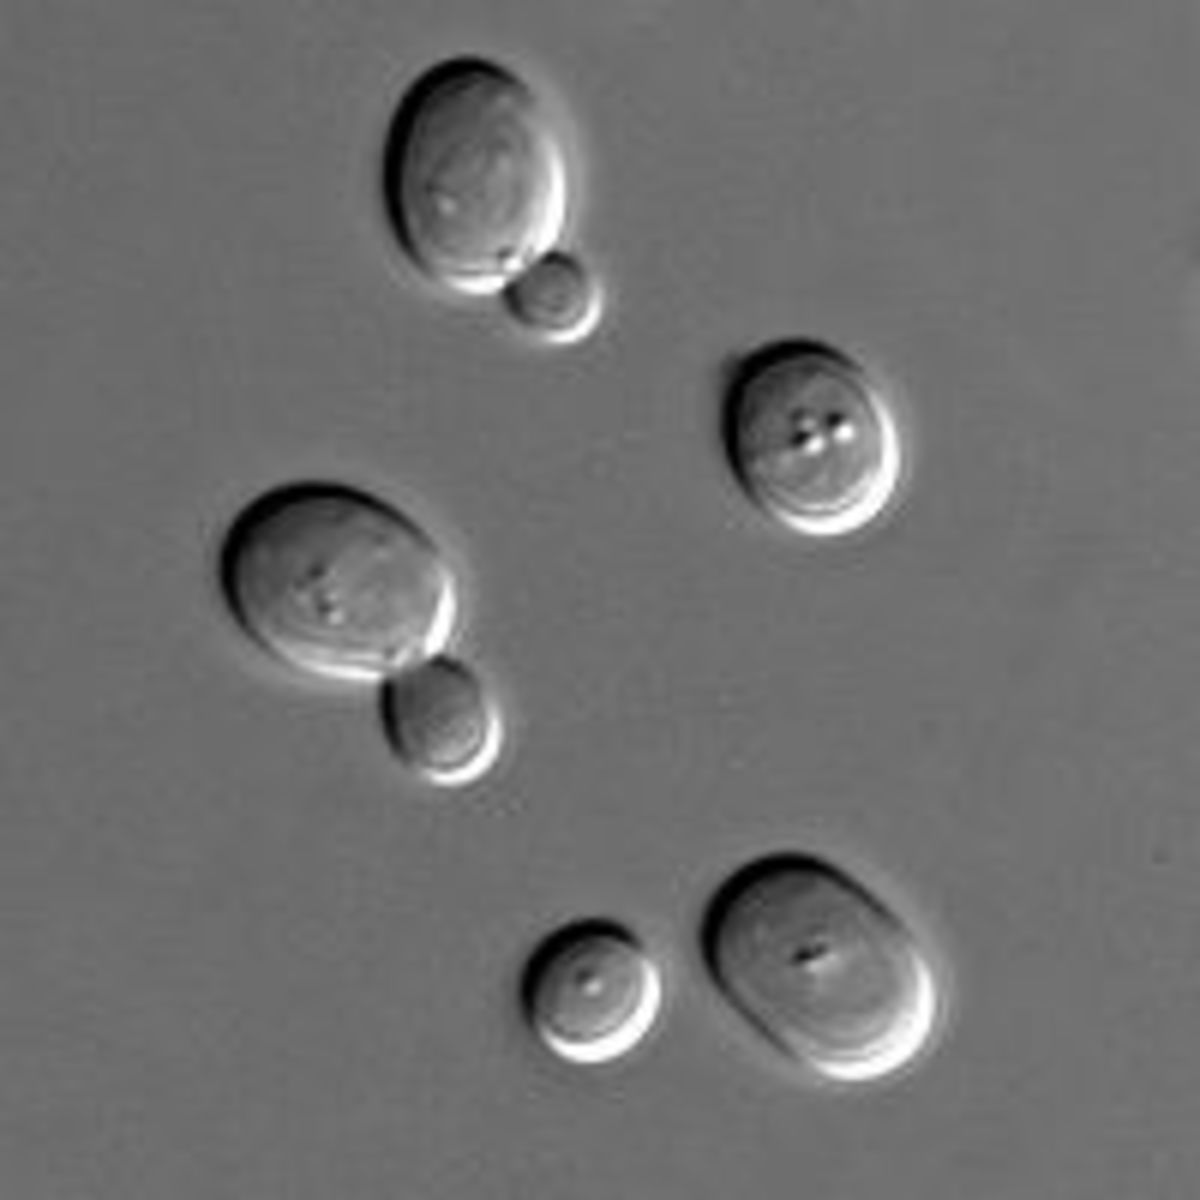 yeast used for fermentaion process